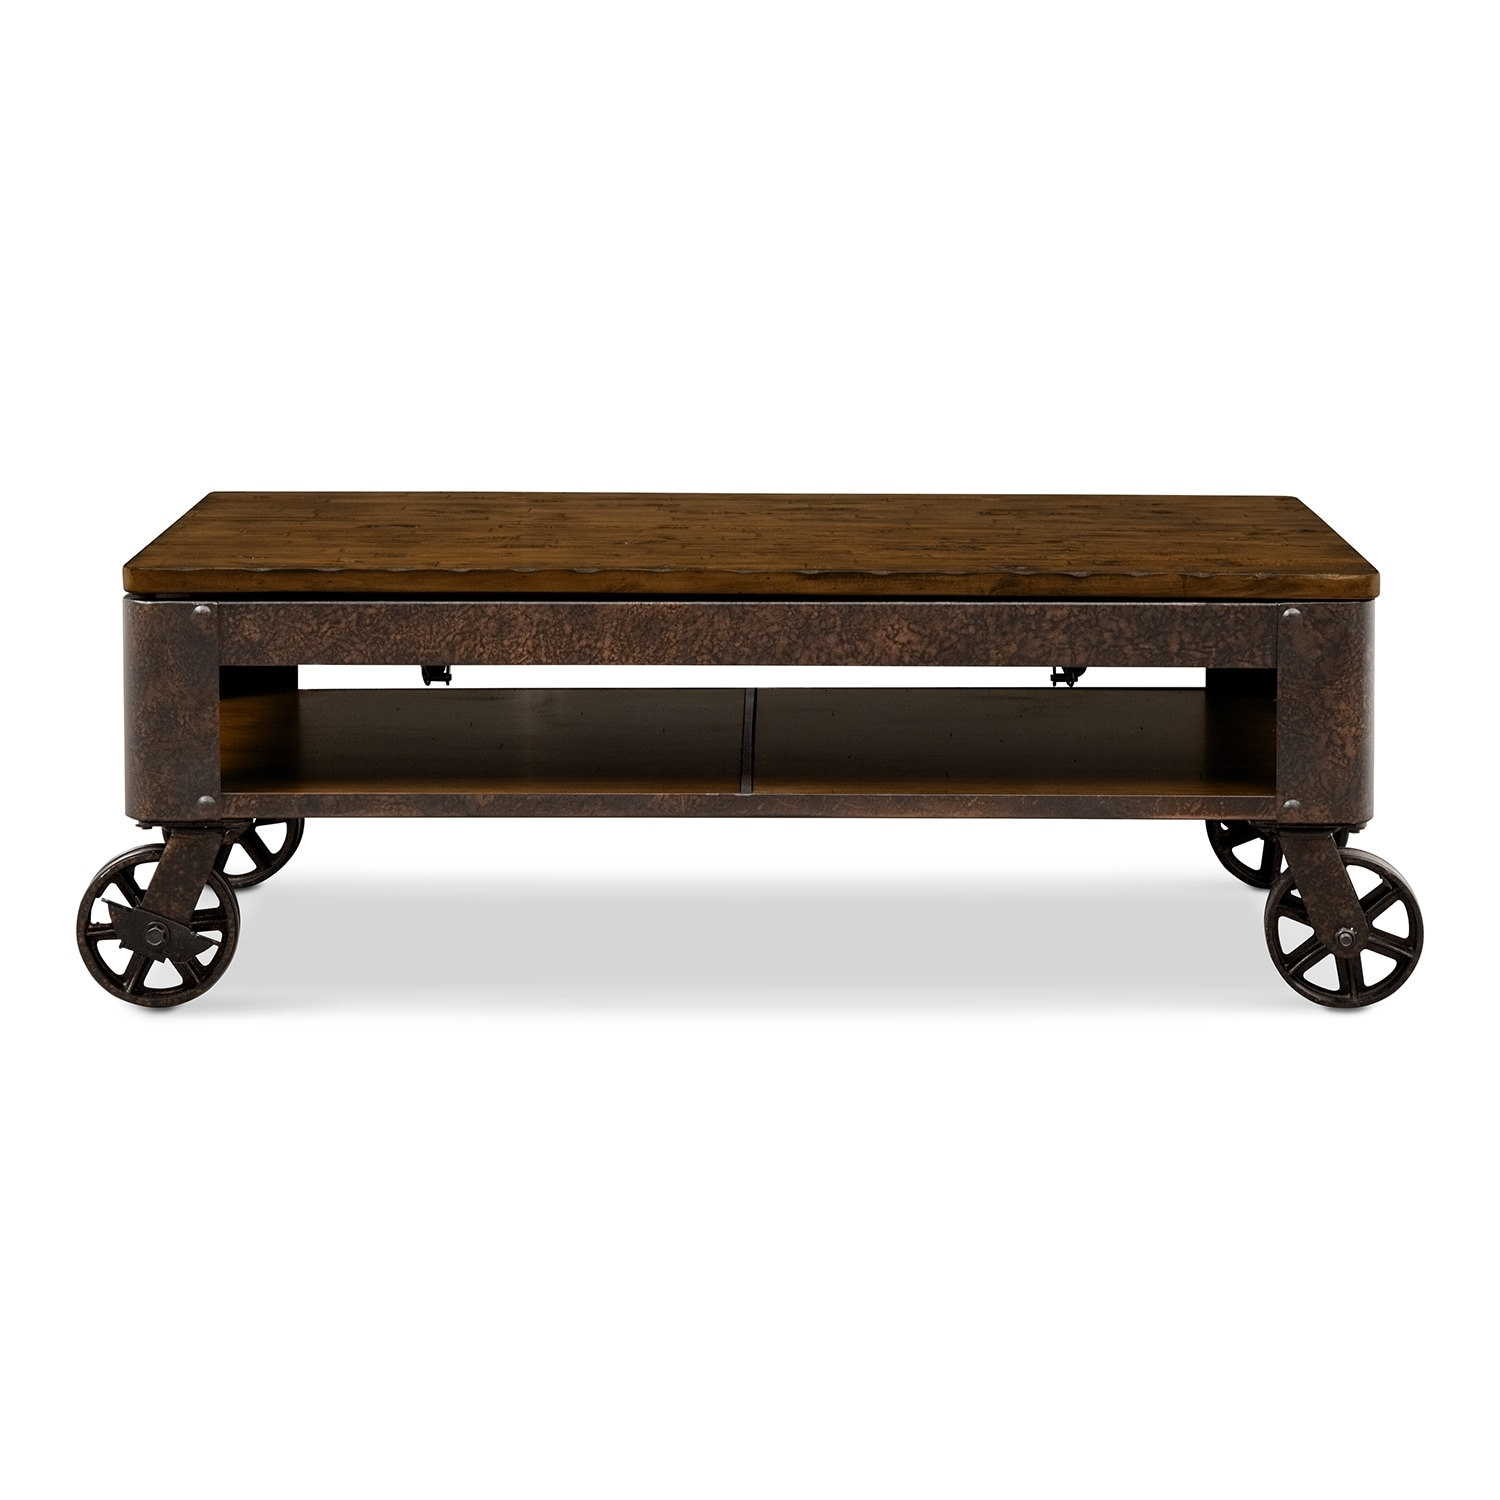 shortline lift-top cocktail table - distressed pine | value city